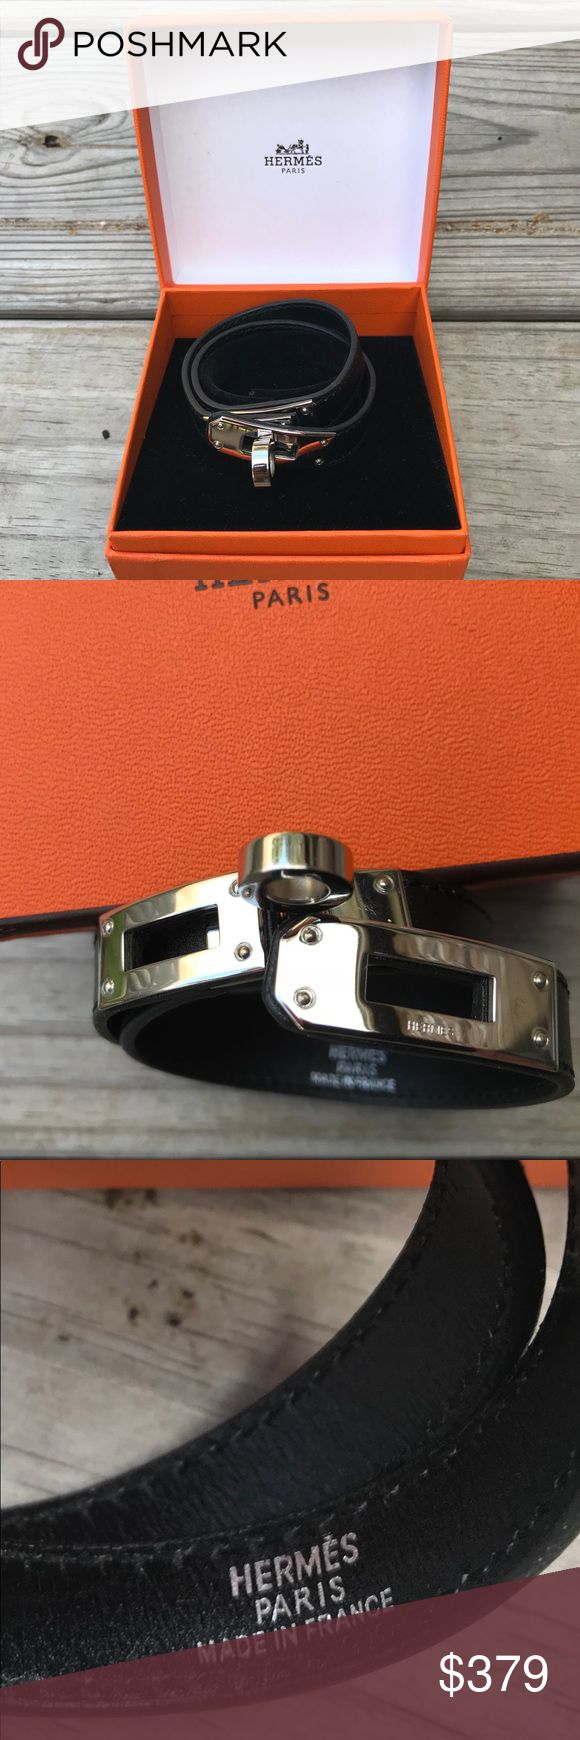 🎁❤️ HERMÈS Kelly Double Tour Wrap Bracelet. Authentic Palladium -plated Hermès Kelly Double Tour wrap bracelet featuring black leather und turn - lock closure. Metal finish: High Polish Condition: like new , no scratches on metal or leather. HERMES Jewelry Bracelets